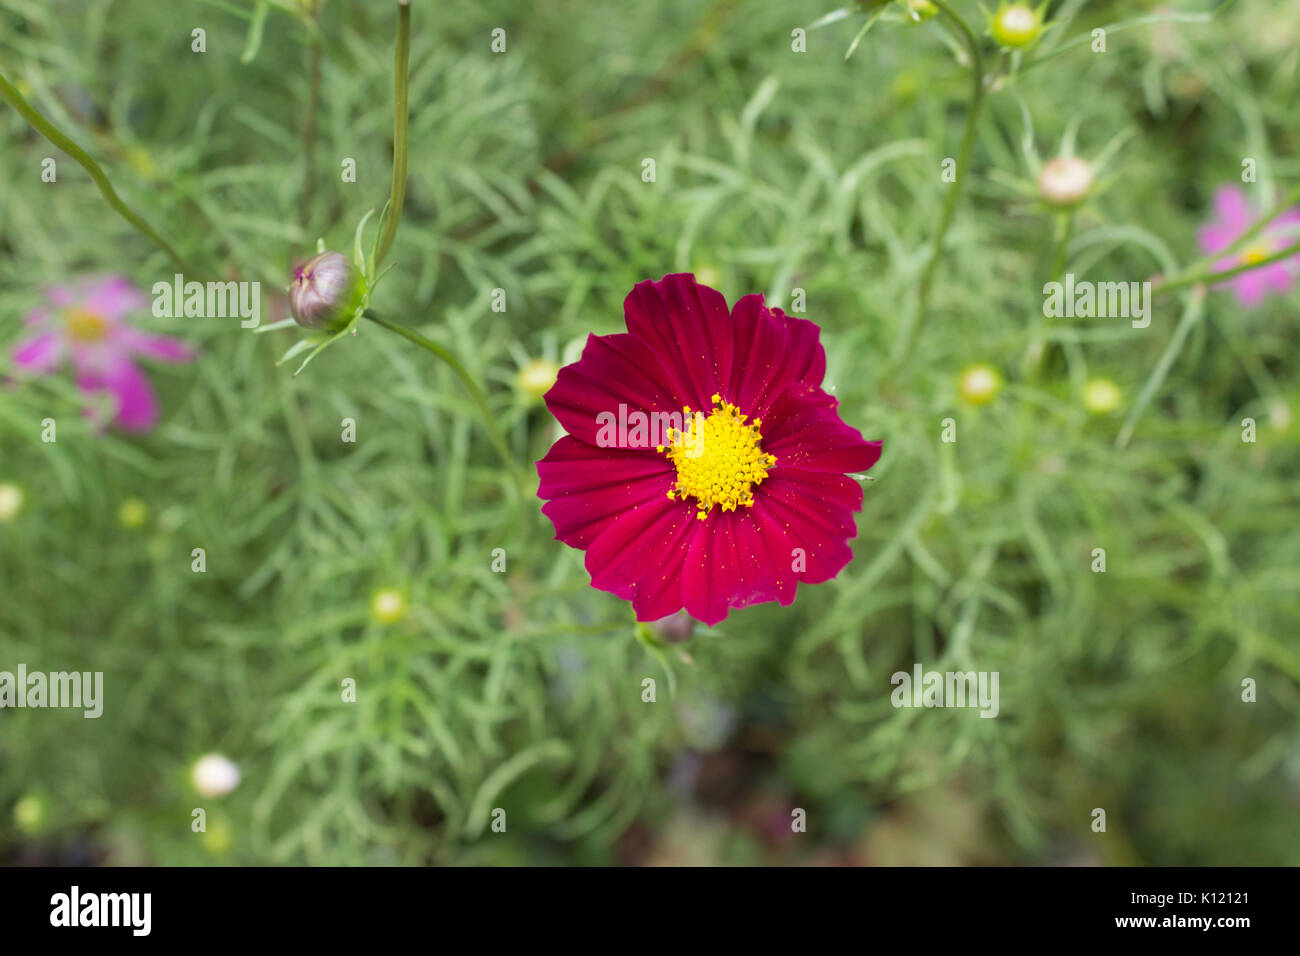 Bright red Cosmos flowers with eight petals and a yellow centre on a stem in full bloom in Summer in the garden with green leaves in the background - Stock Image